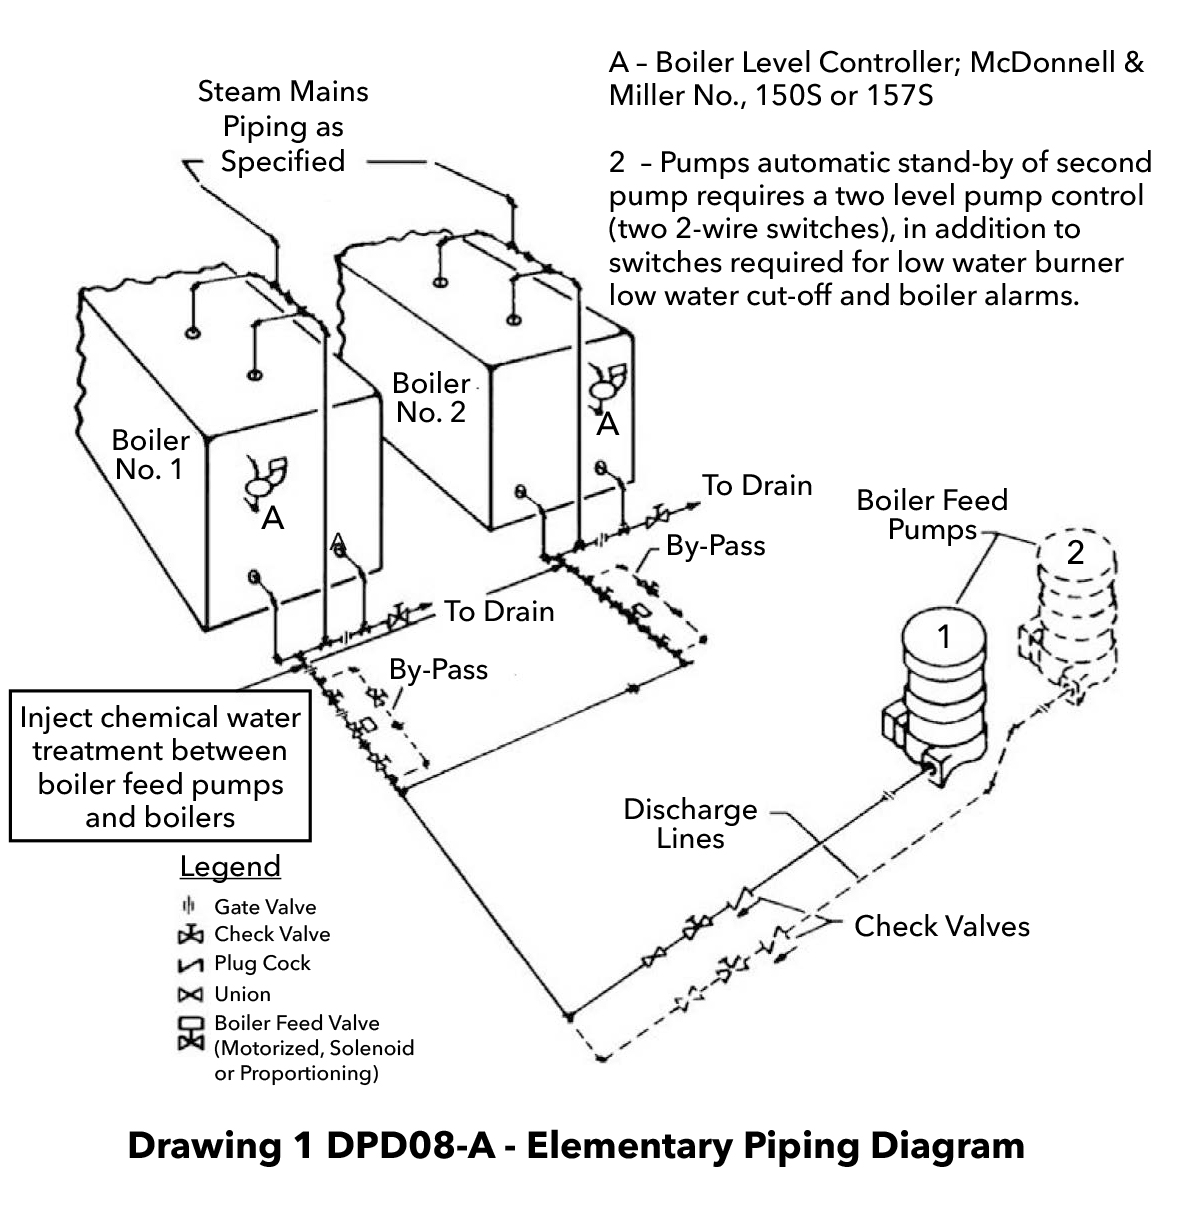 Typical Boiler Feed Unit Discharge Piping Arrangements Xylem Thermostats Wiring Diagrams Mcdounld Miller Boiler Controls Wiring Diagrams